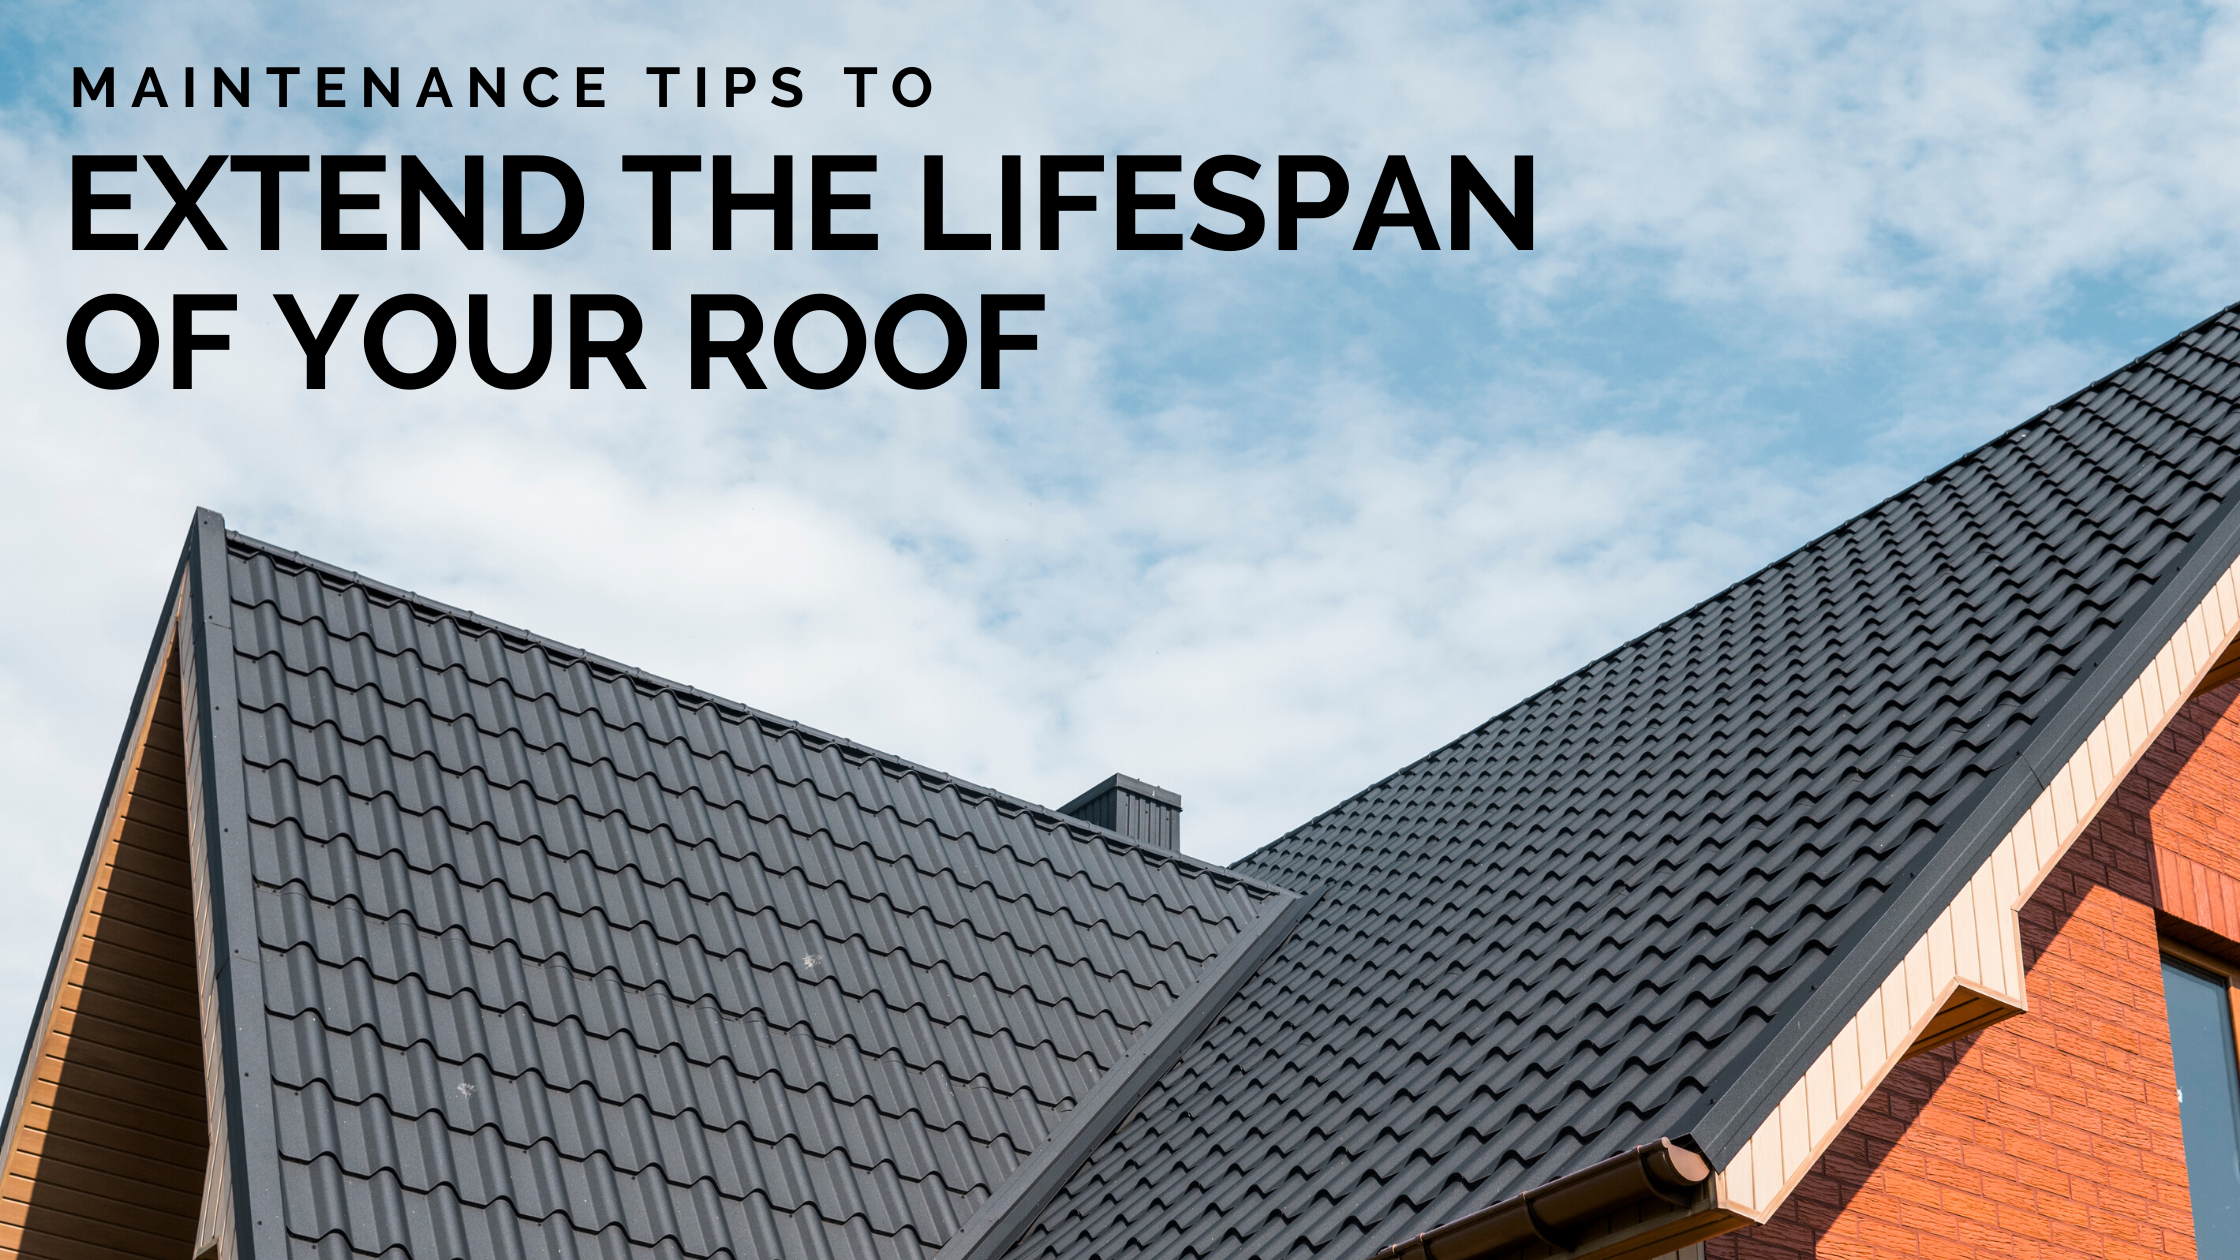 Maintenance Tips to Extend the Lifespan of Your Roof